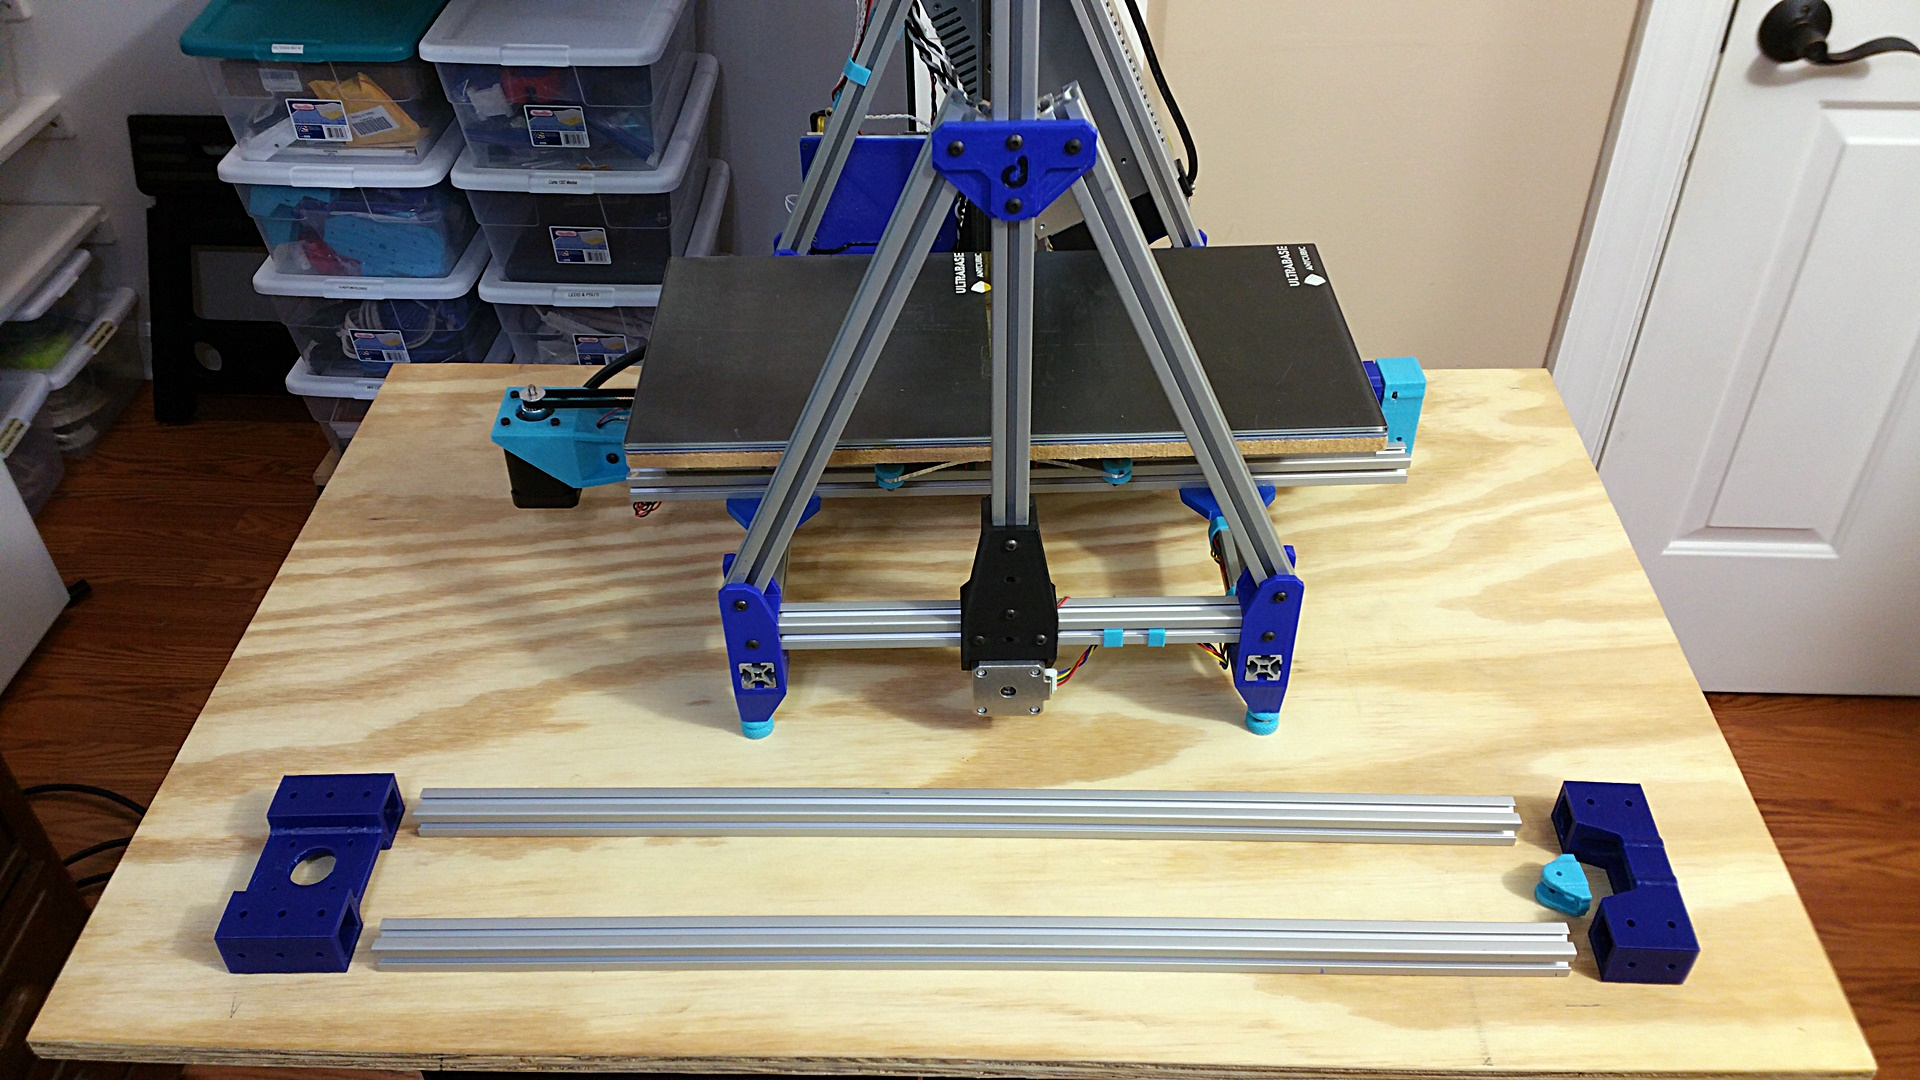 Move Mock up visualization of the New Extrusions and Bracketry for the Y-Axis